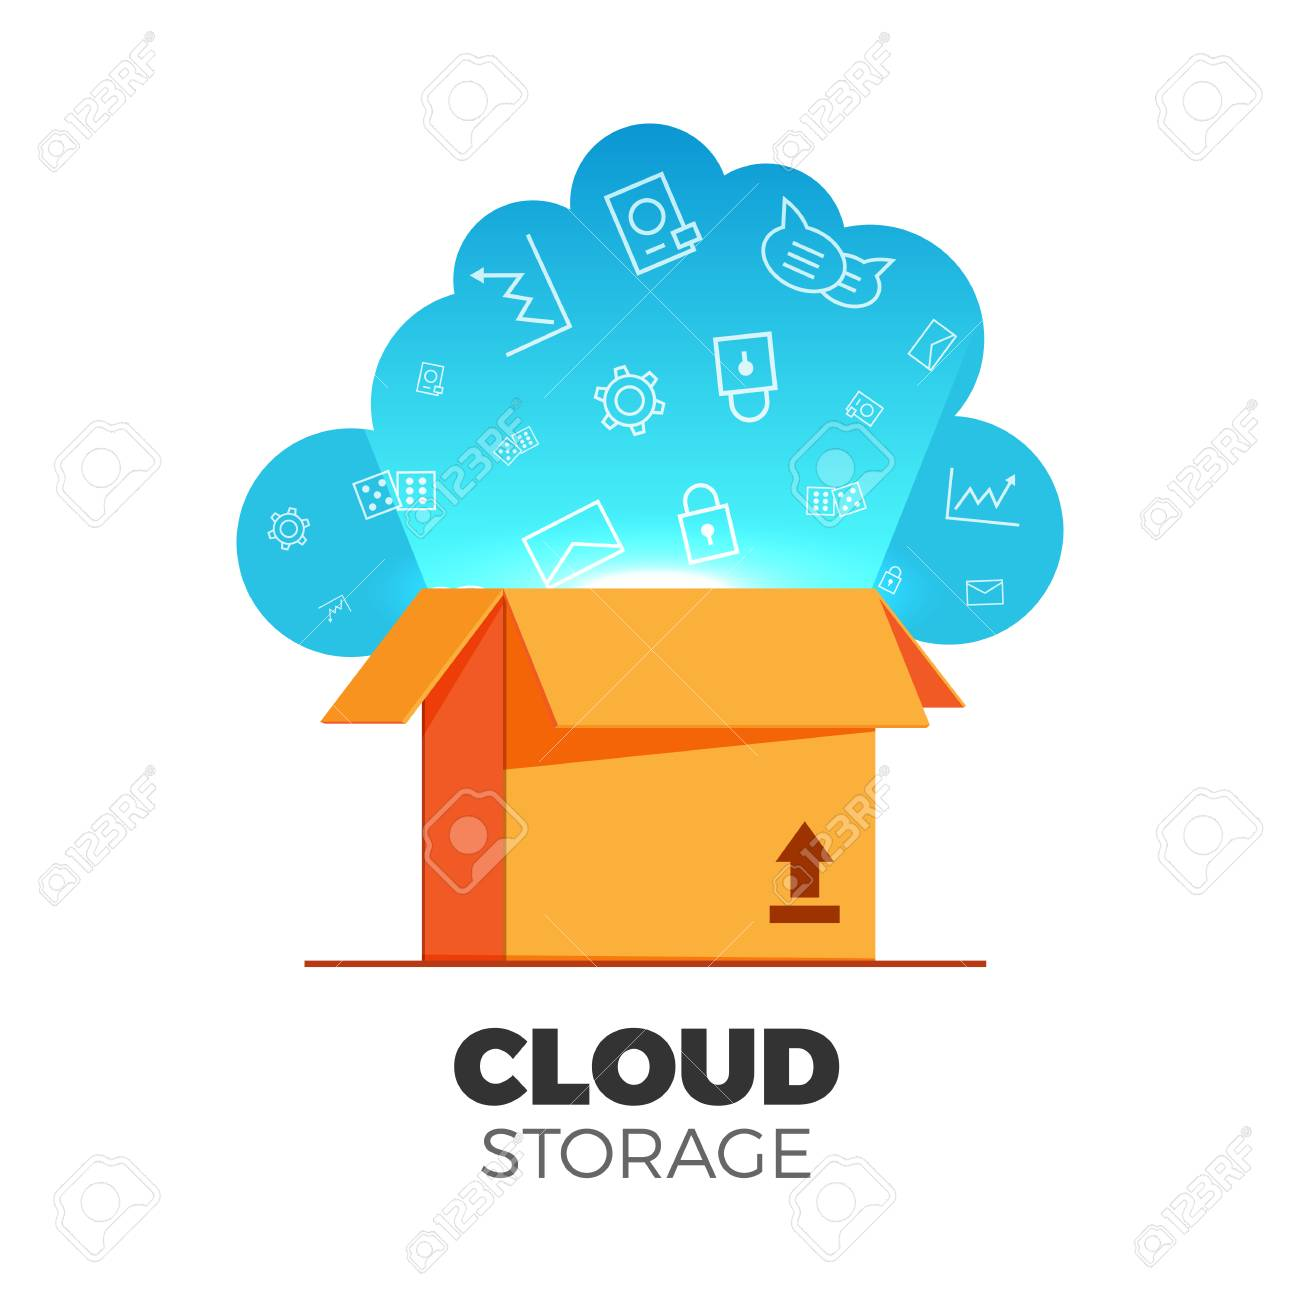 Cloud storage vector illustration in a flat design. Pseudo 3d box with cloud and light  sc 1 st  123RF.com & Cloud Storage Vector Illustration In A Flat Design. Pseudo 3d ...